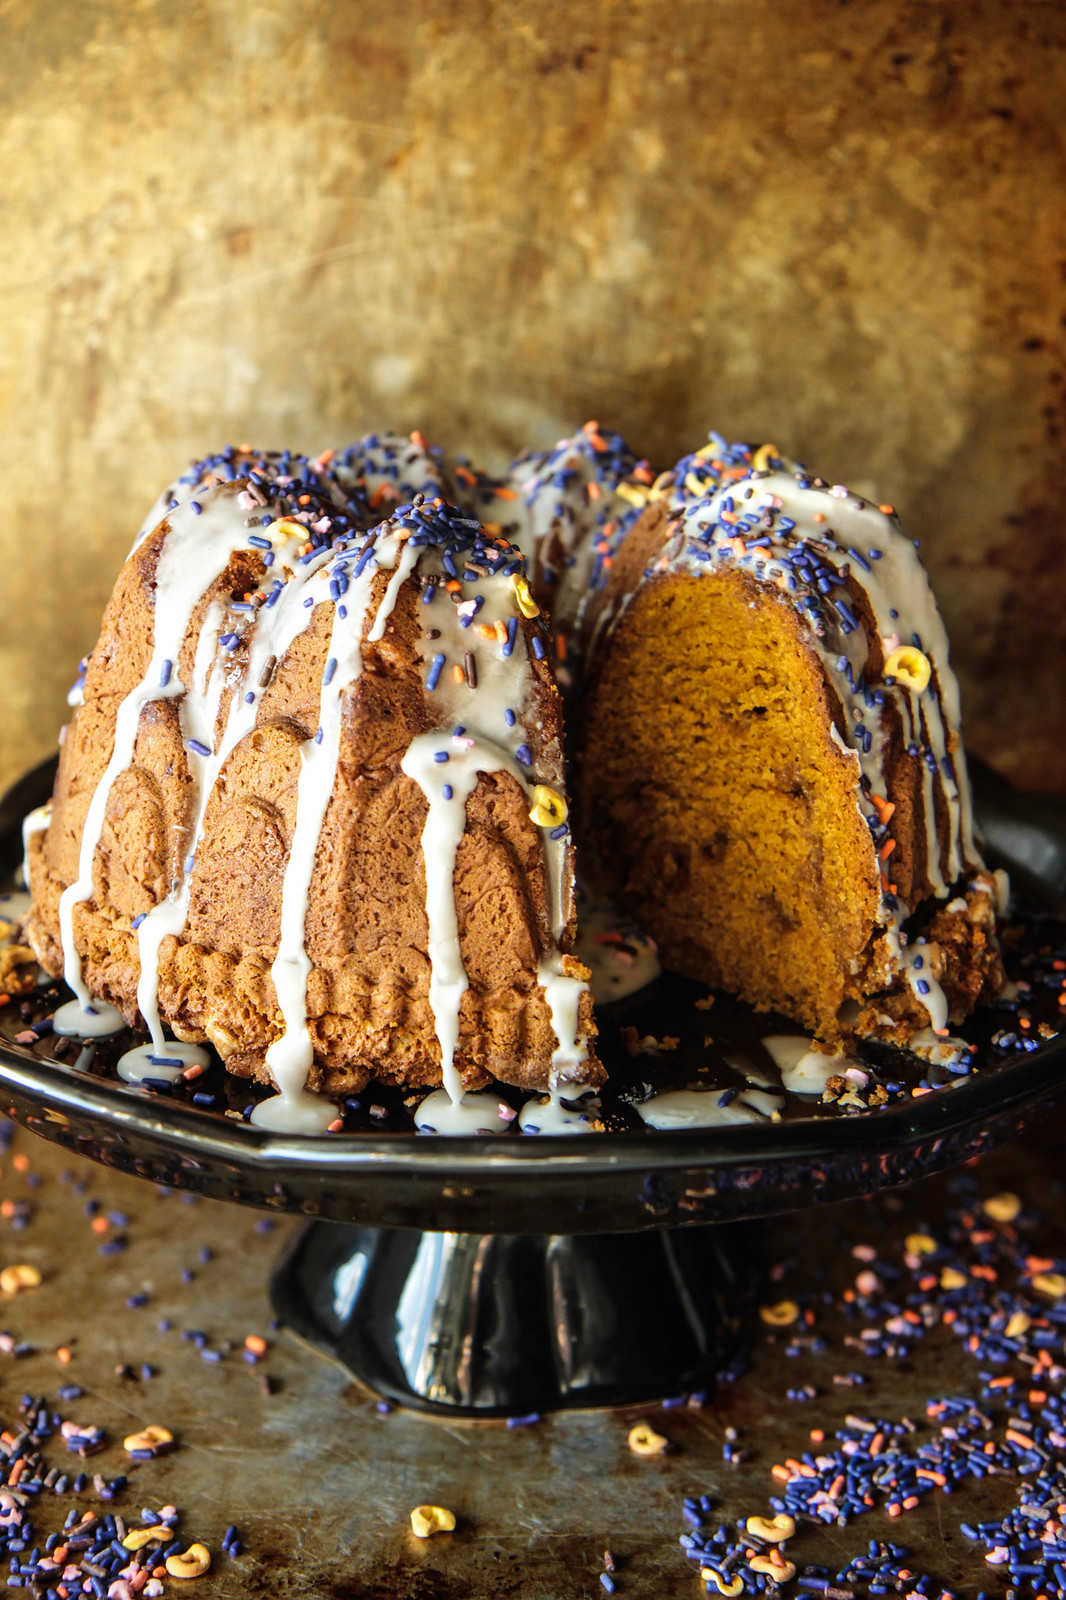 Pumpkin White Chocolate Bundt Cake- Gluten-Free and Vegan from Heather